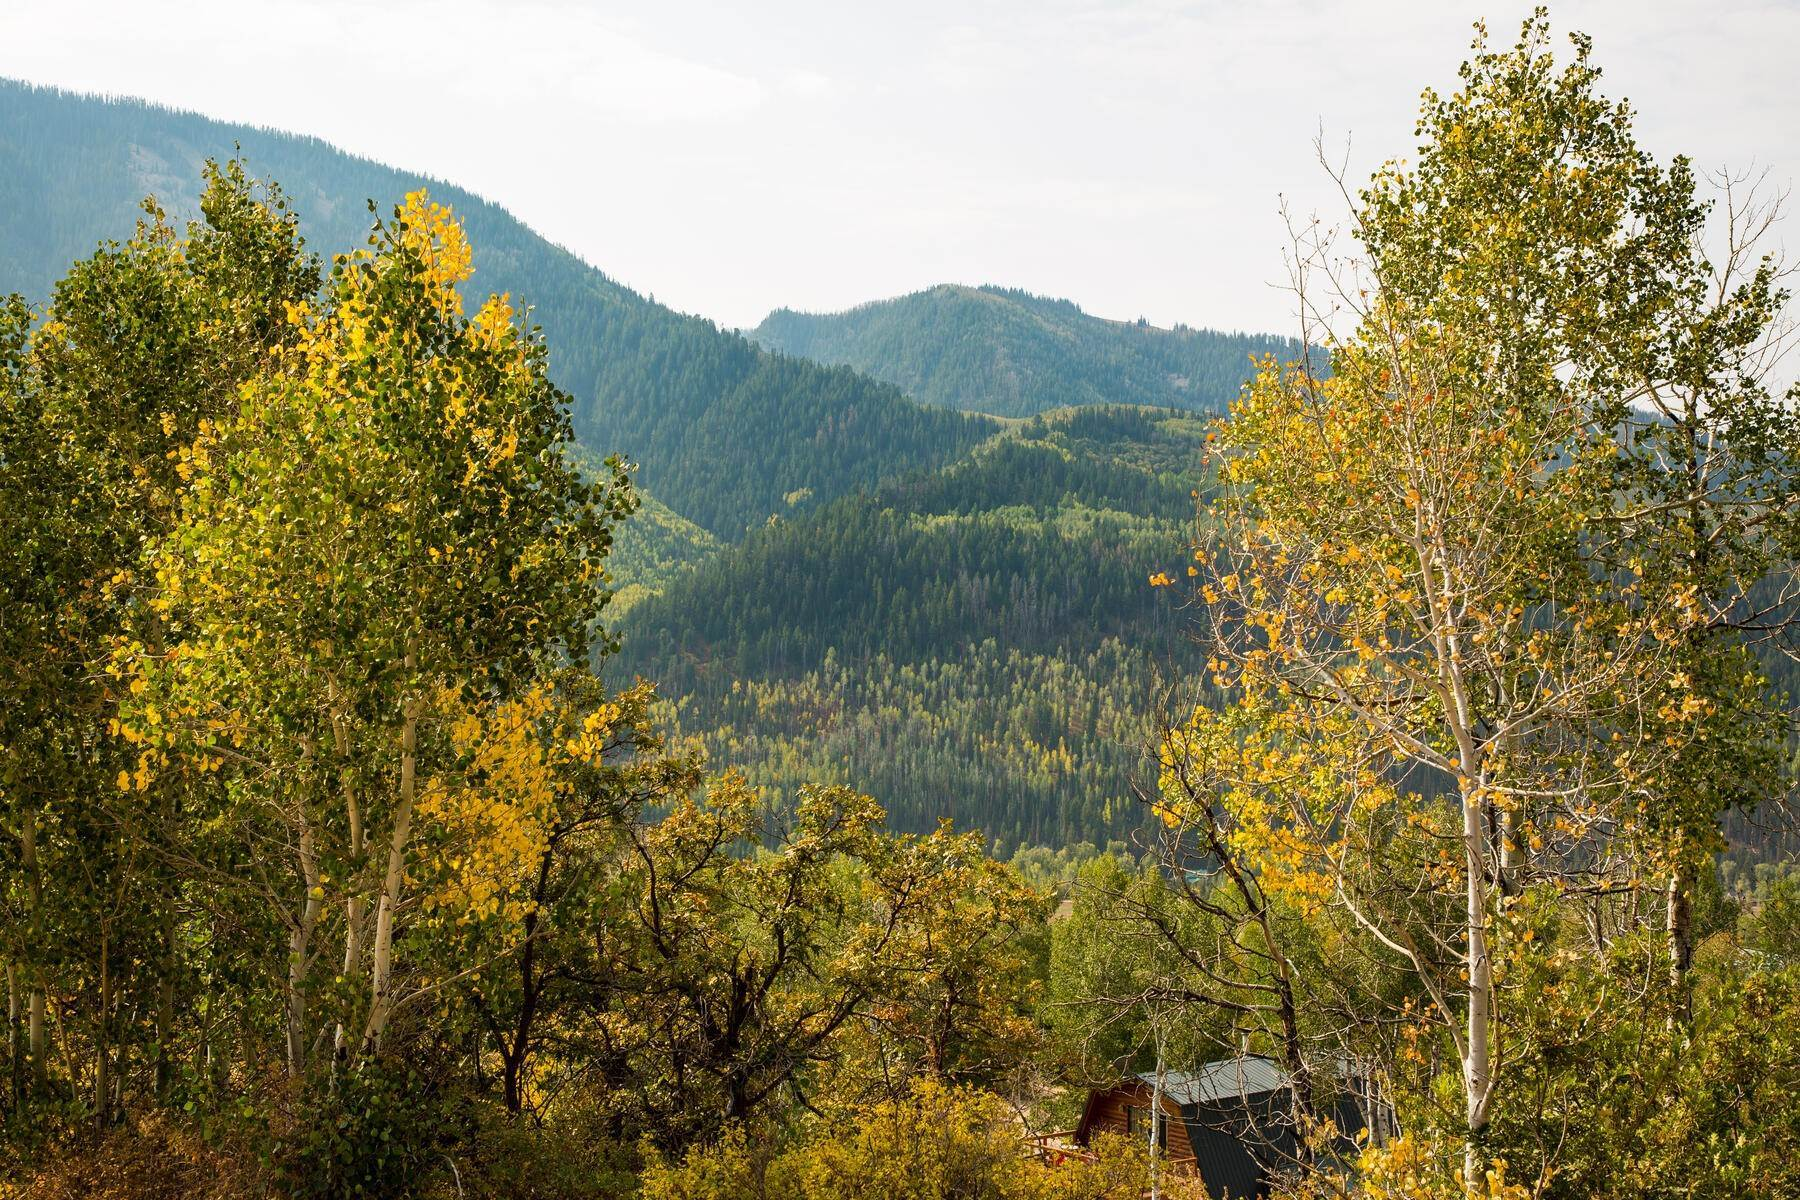 Land for Sale at Two Stunning Lots in Gated Weber Canyon Community Aspen Mountain Lots 42 & 43 Oakley, Utah 84055 United States